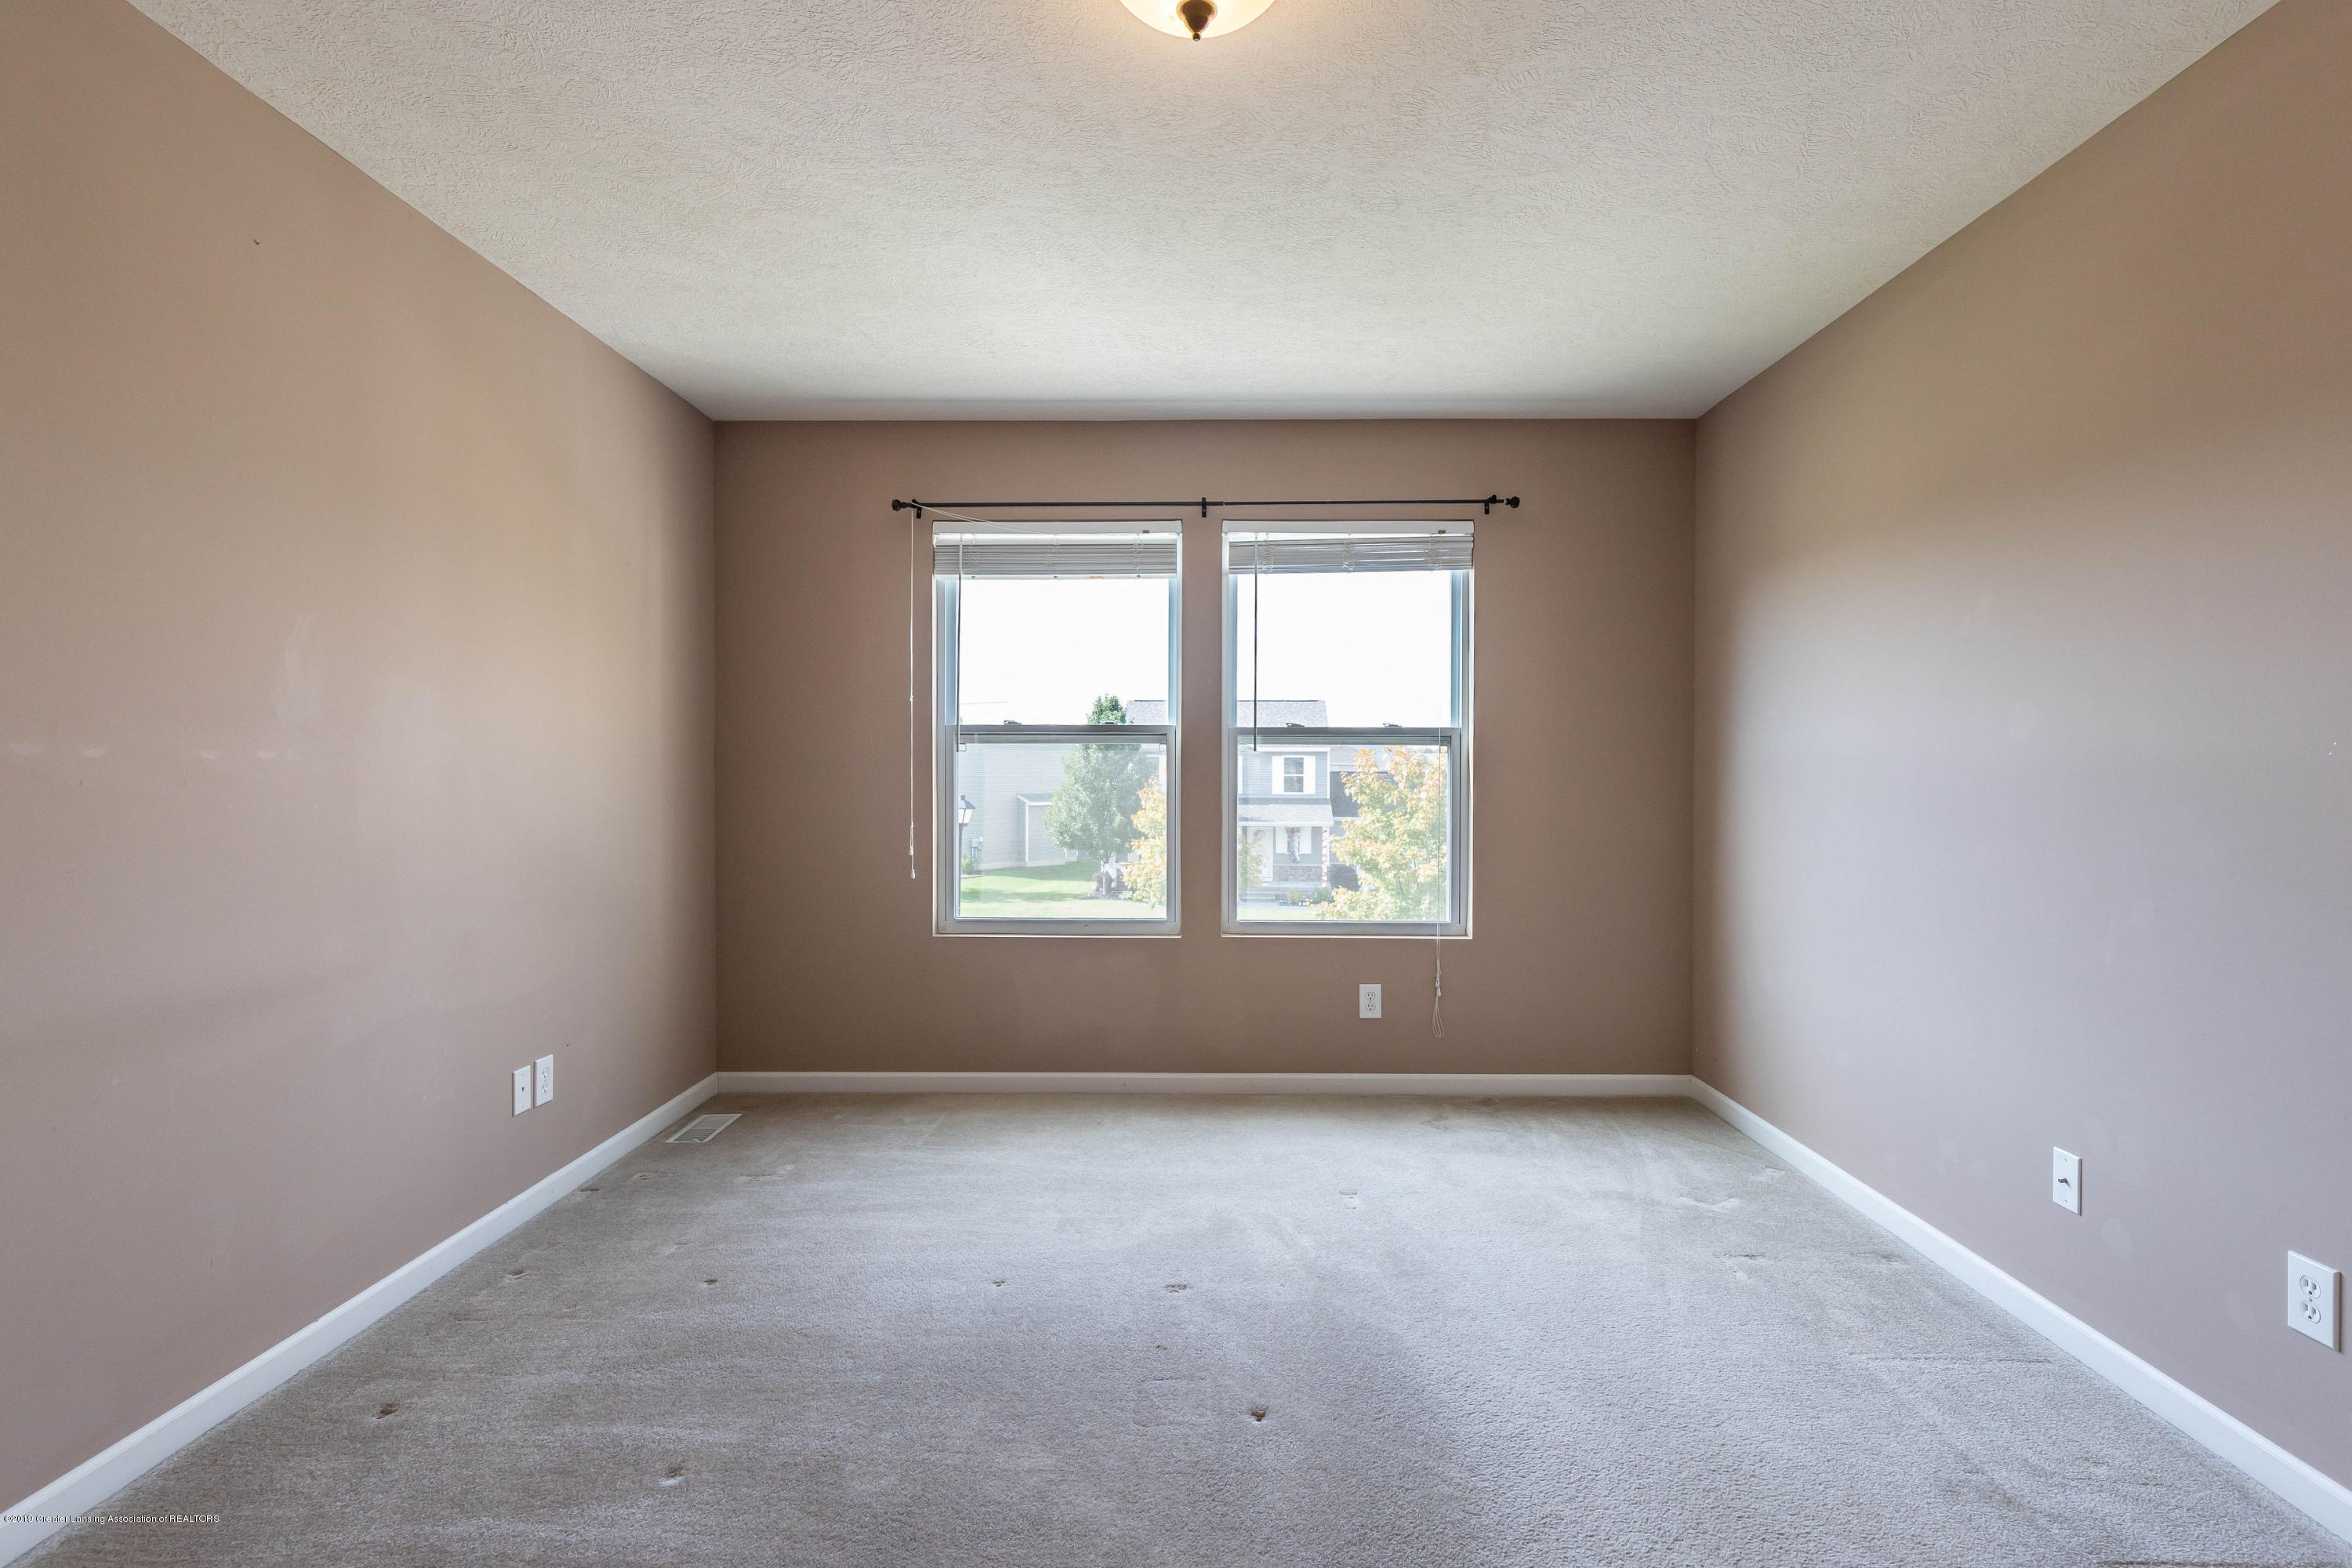 15125 Loxley Ln - loxleybed1(1of1) - 12